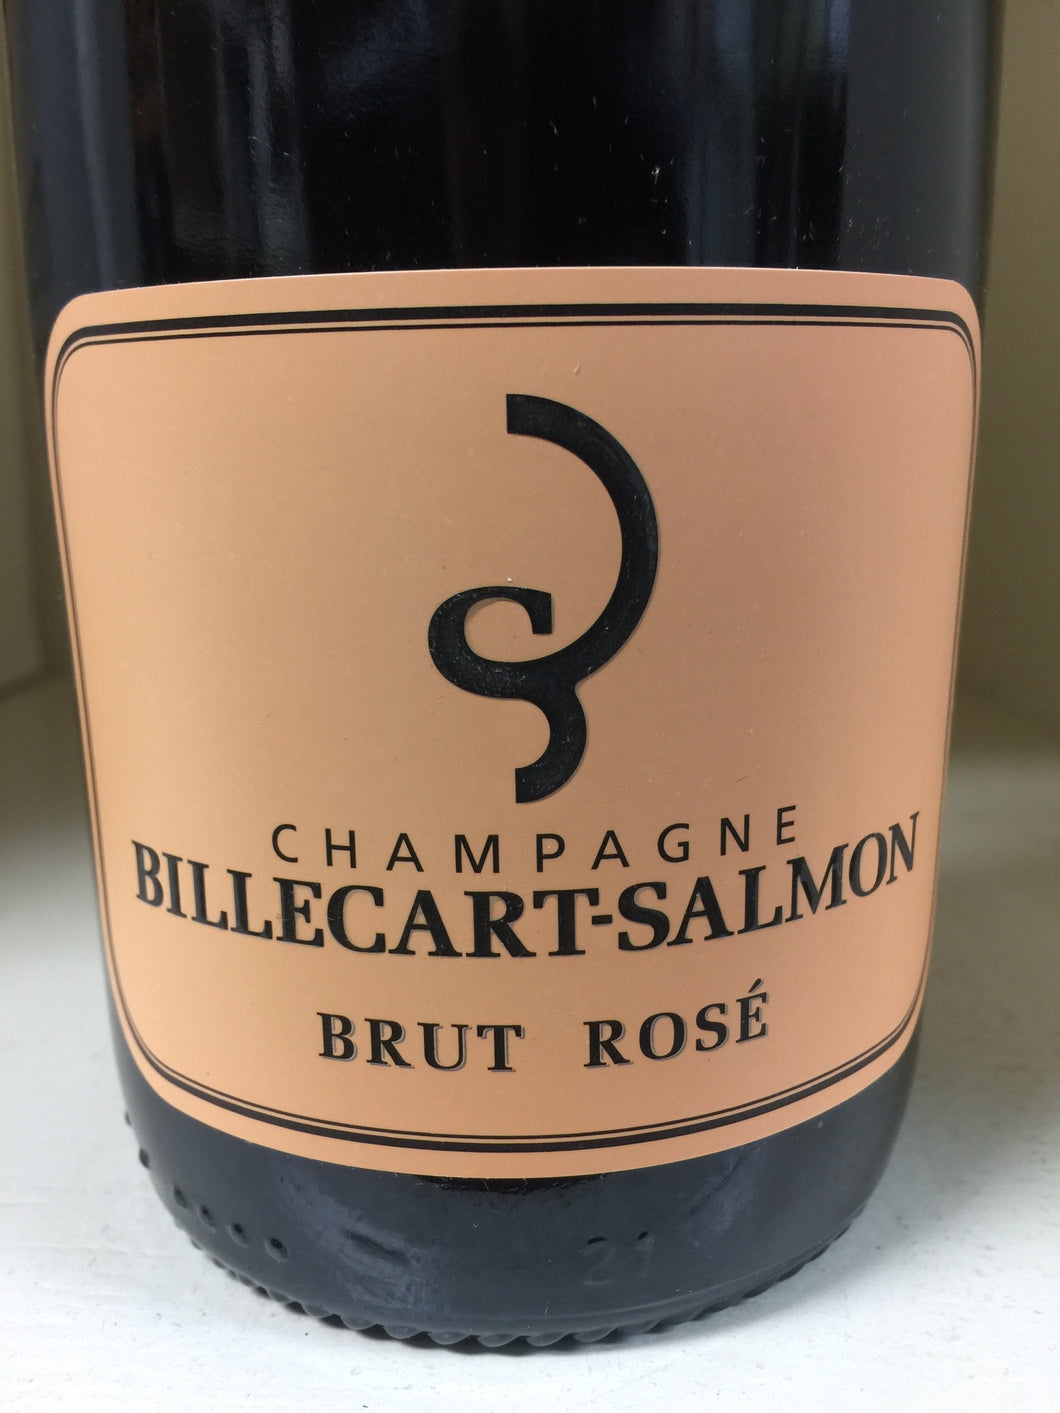 N.V. Billecart-Salmon Brut Rose - HALF BOTTLE-